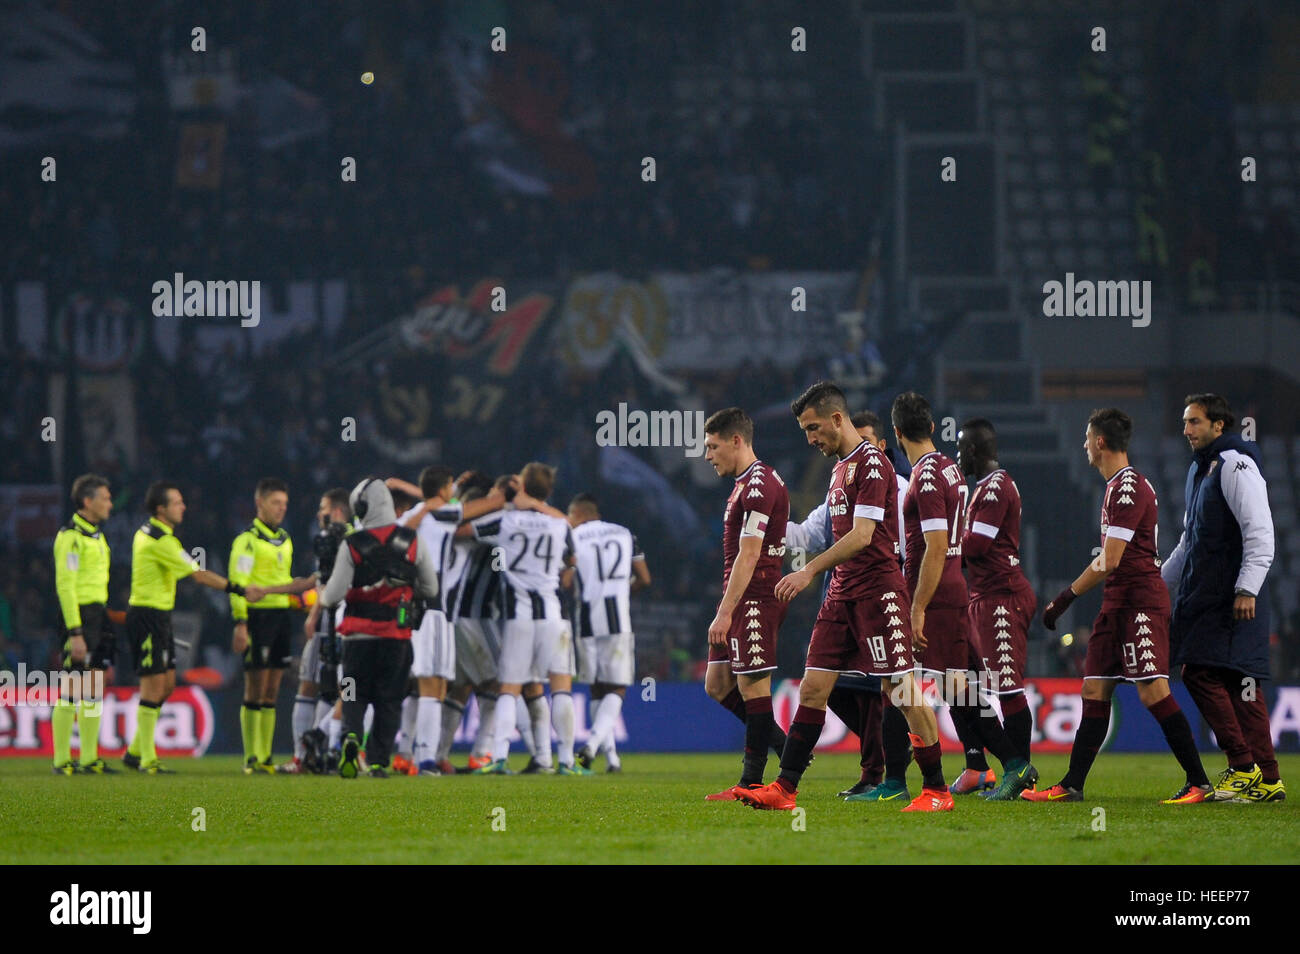 Turin, Italy. 2016, 11 december: Players of Torino FC (right) are disappointed while players of Juventus FC (left) - Stock Image